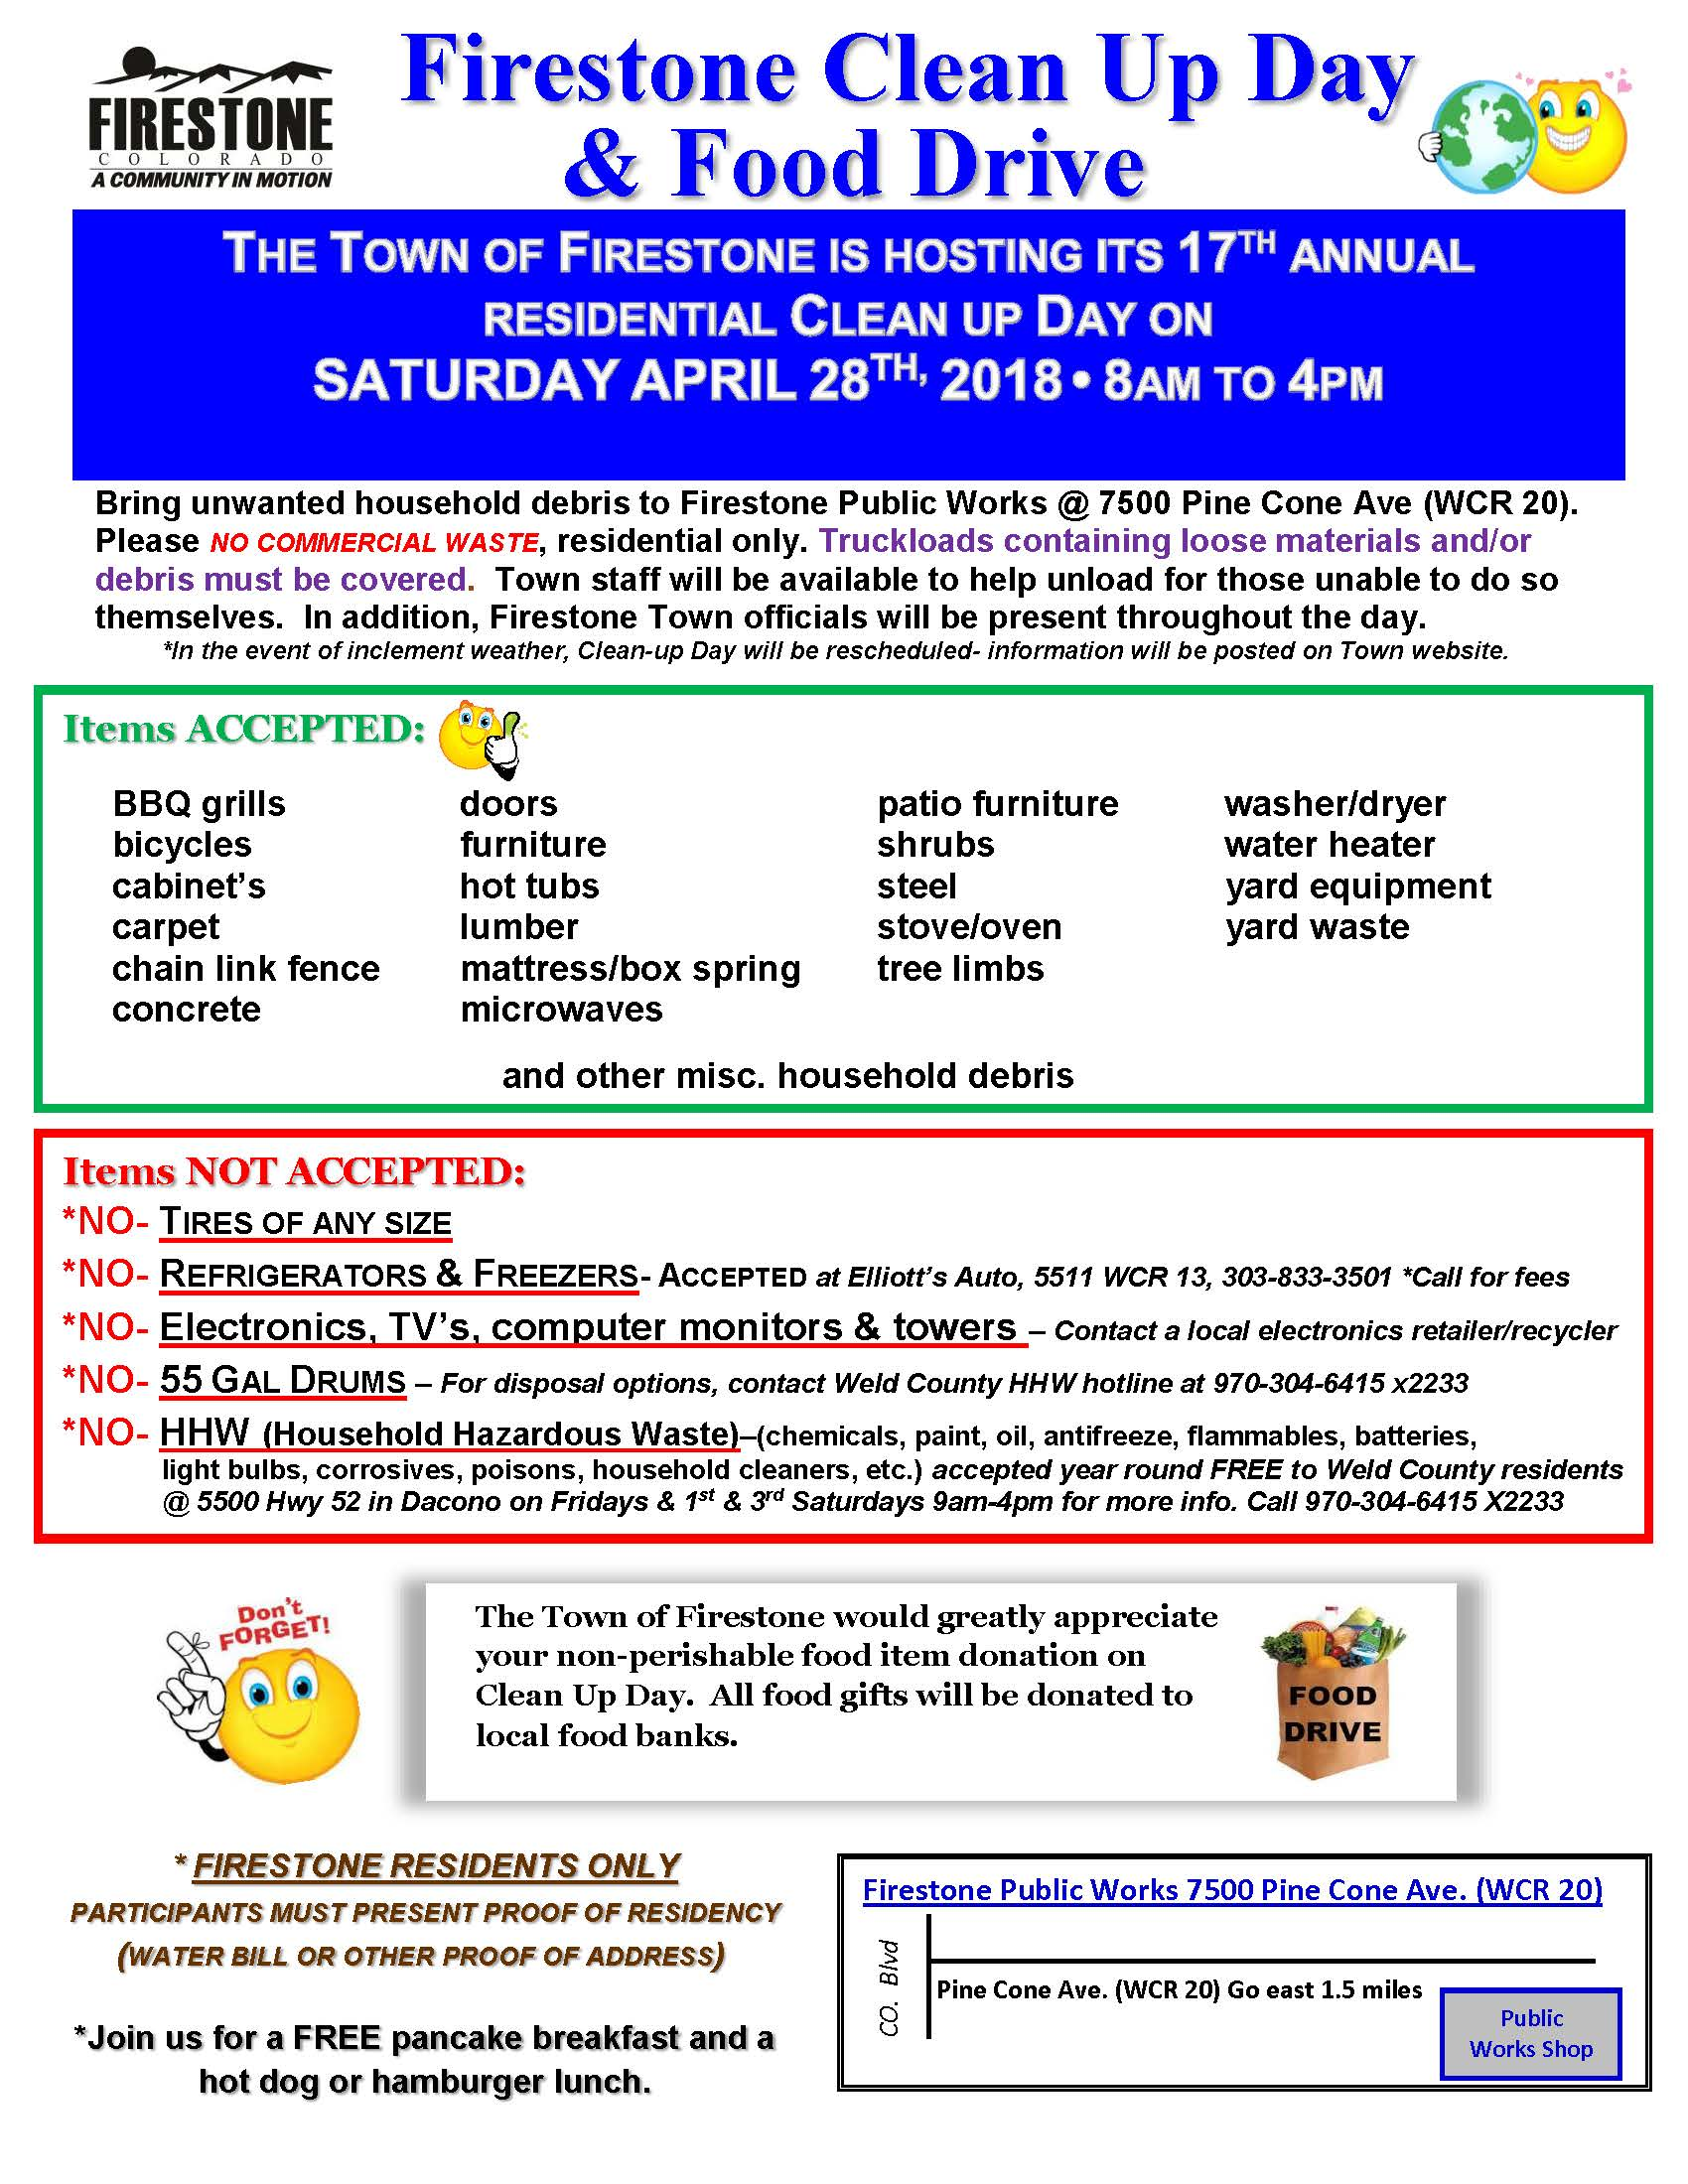 A flyer for the 2018 Clean-Up Day that details what is and is not allowed. Additional information li